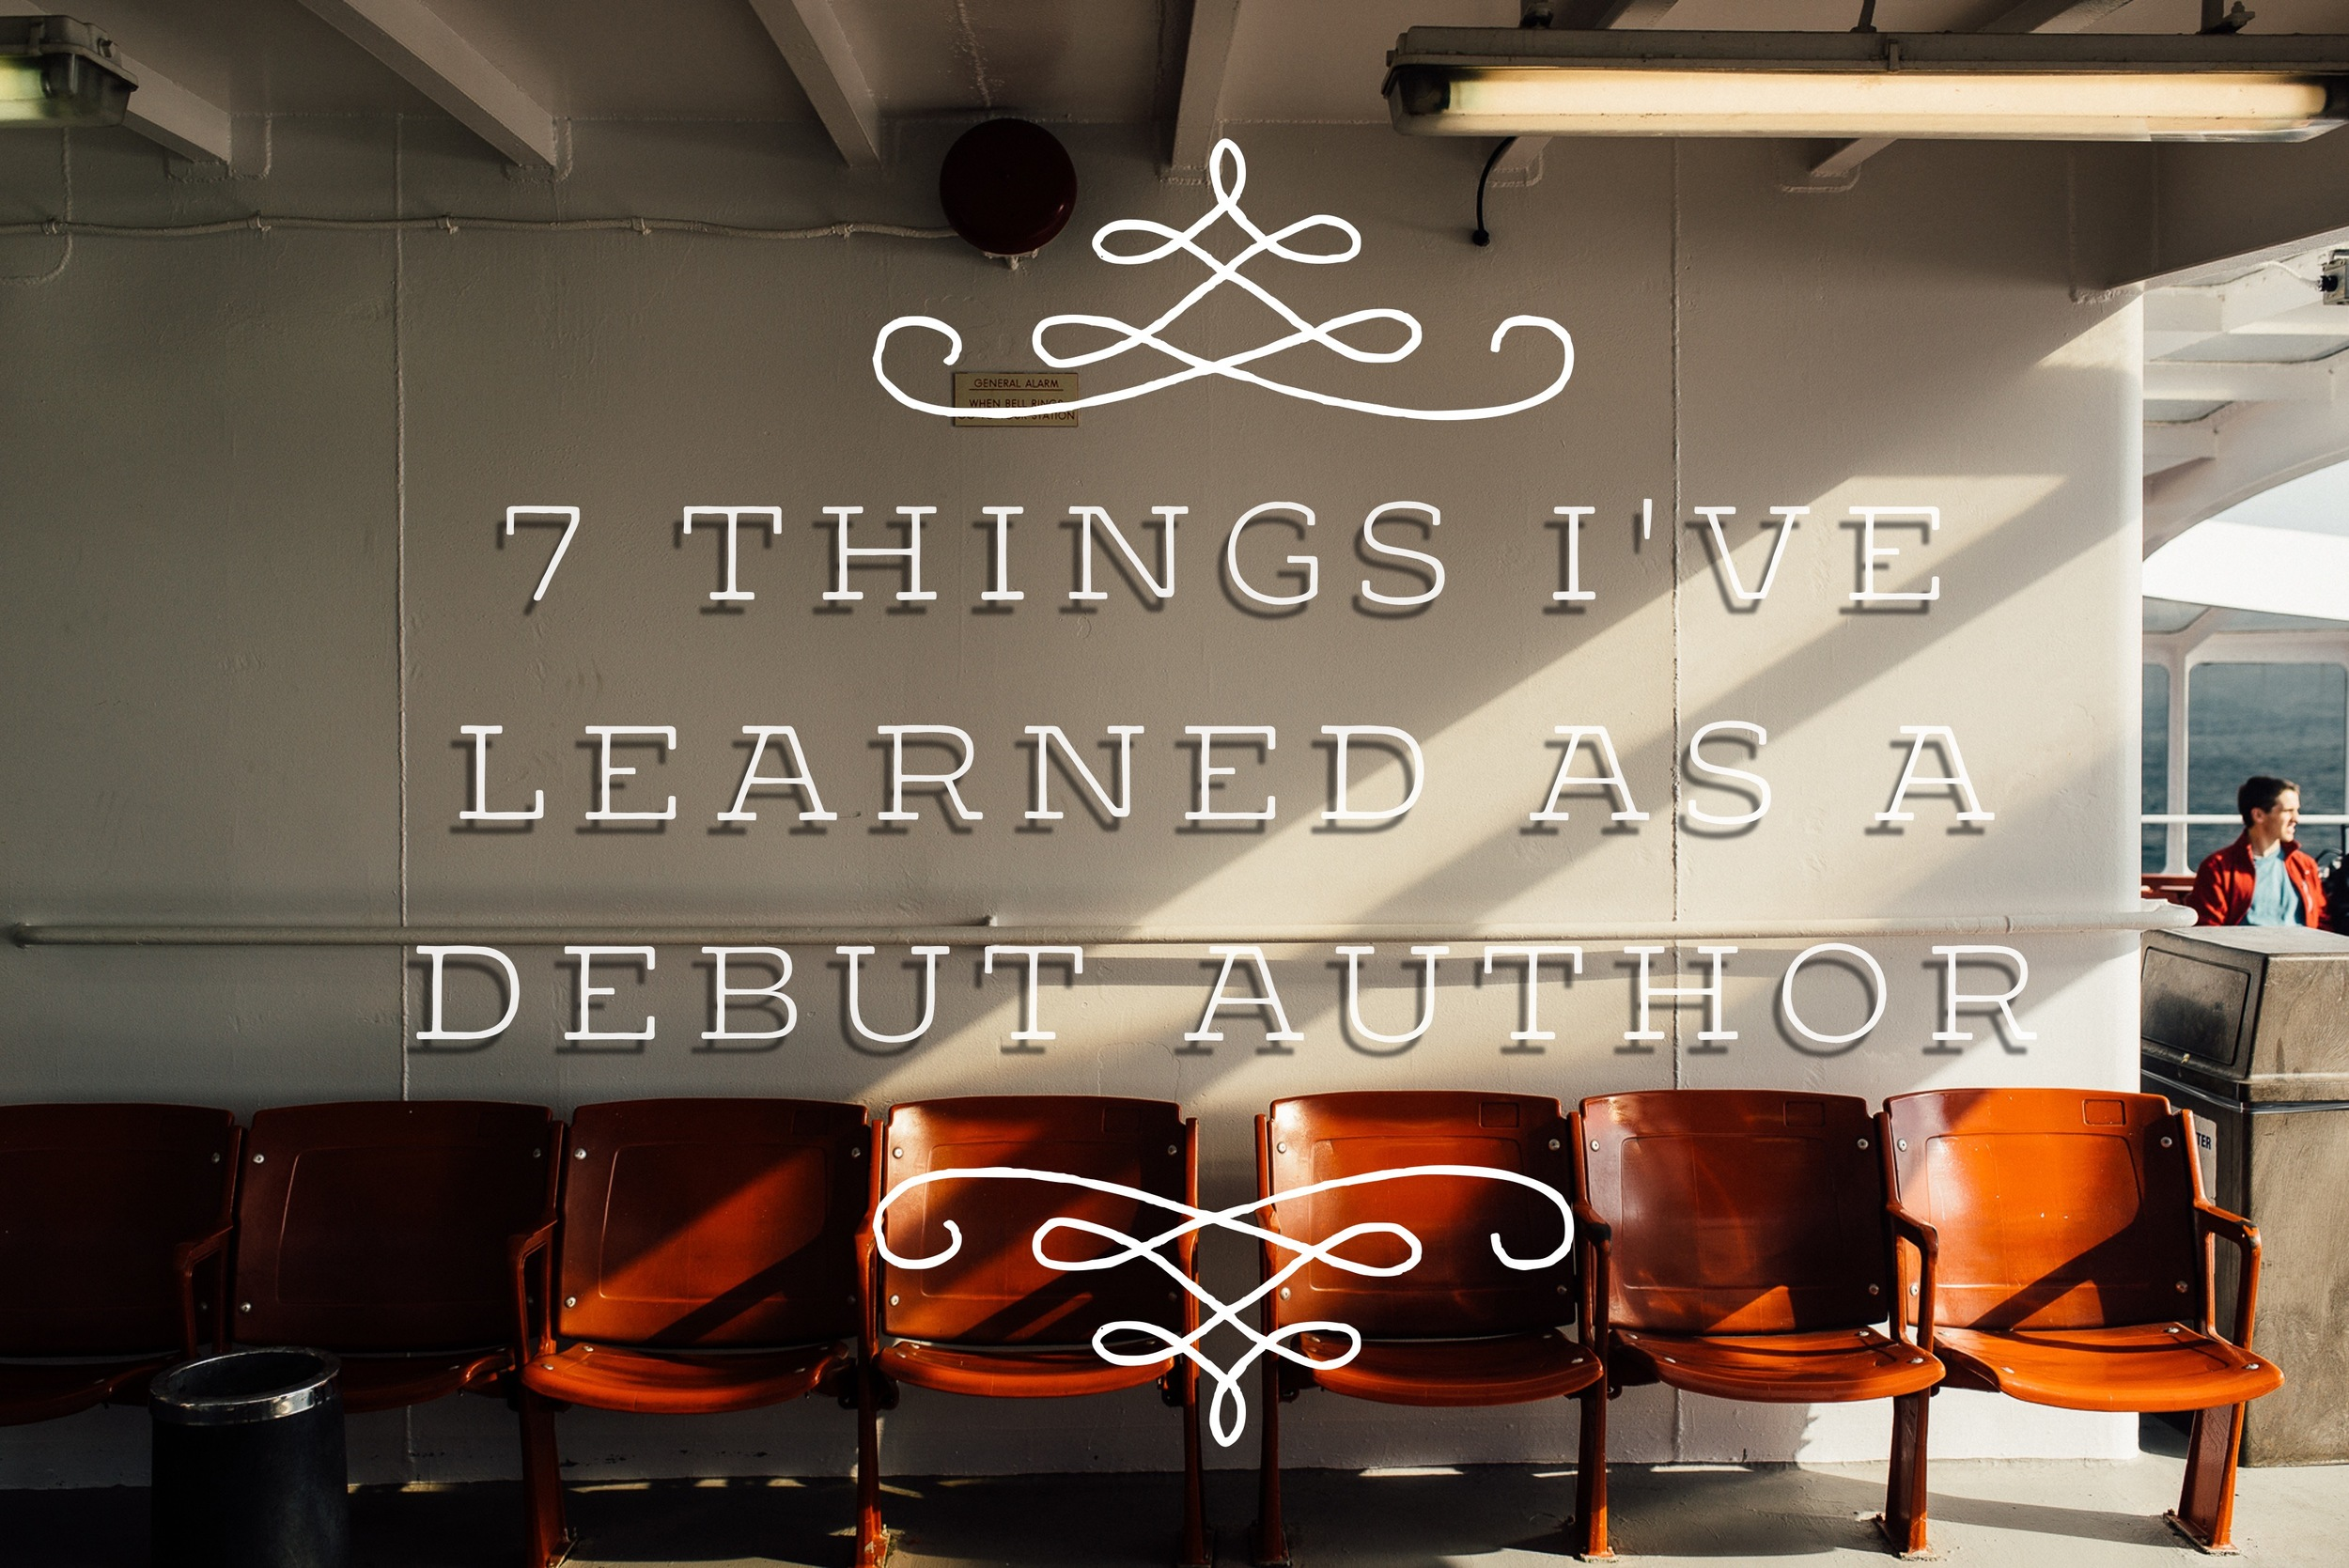 7 Things I've Learned as a Debut Author